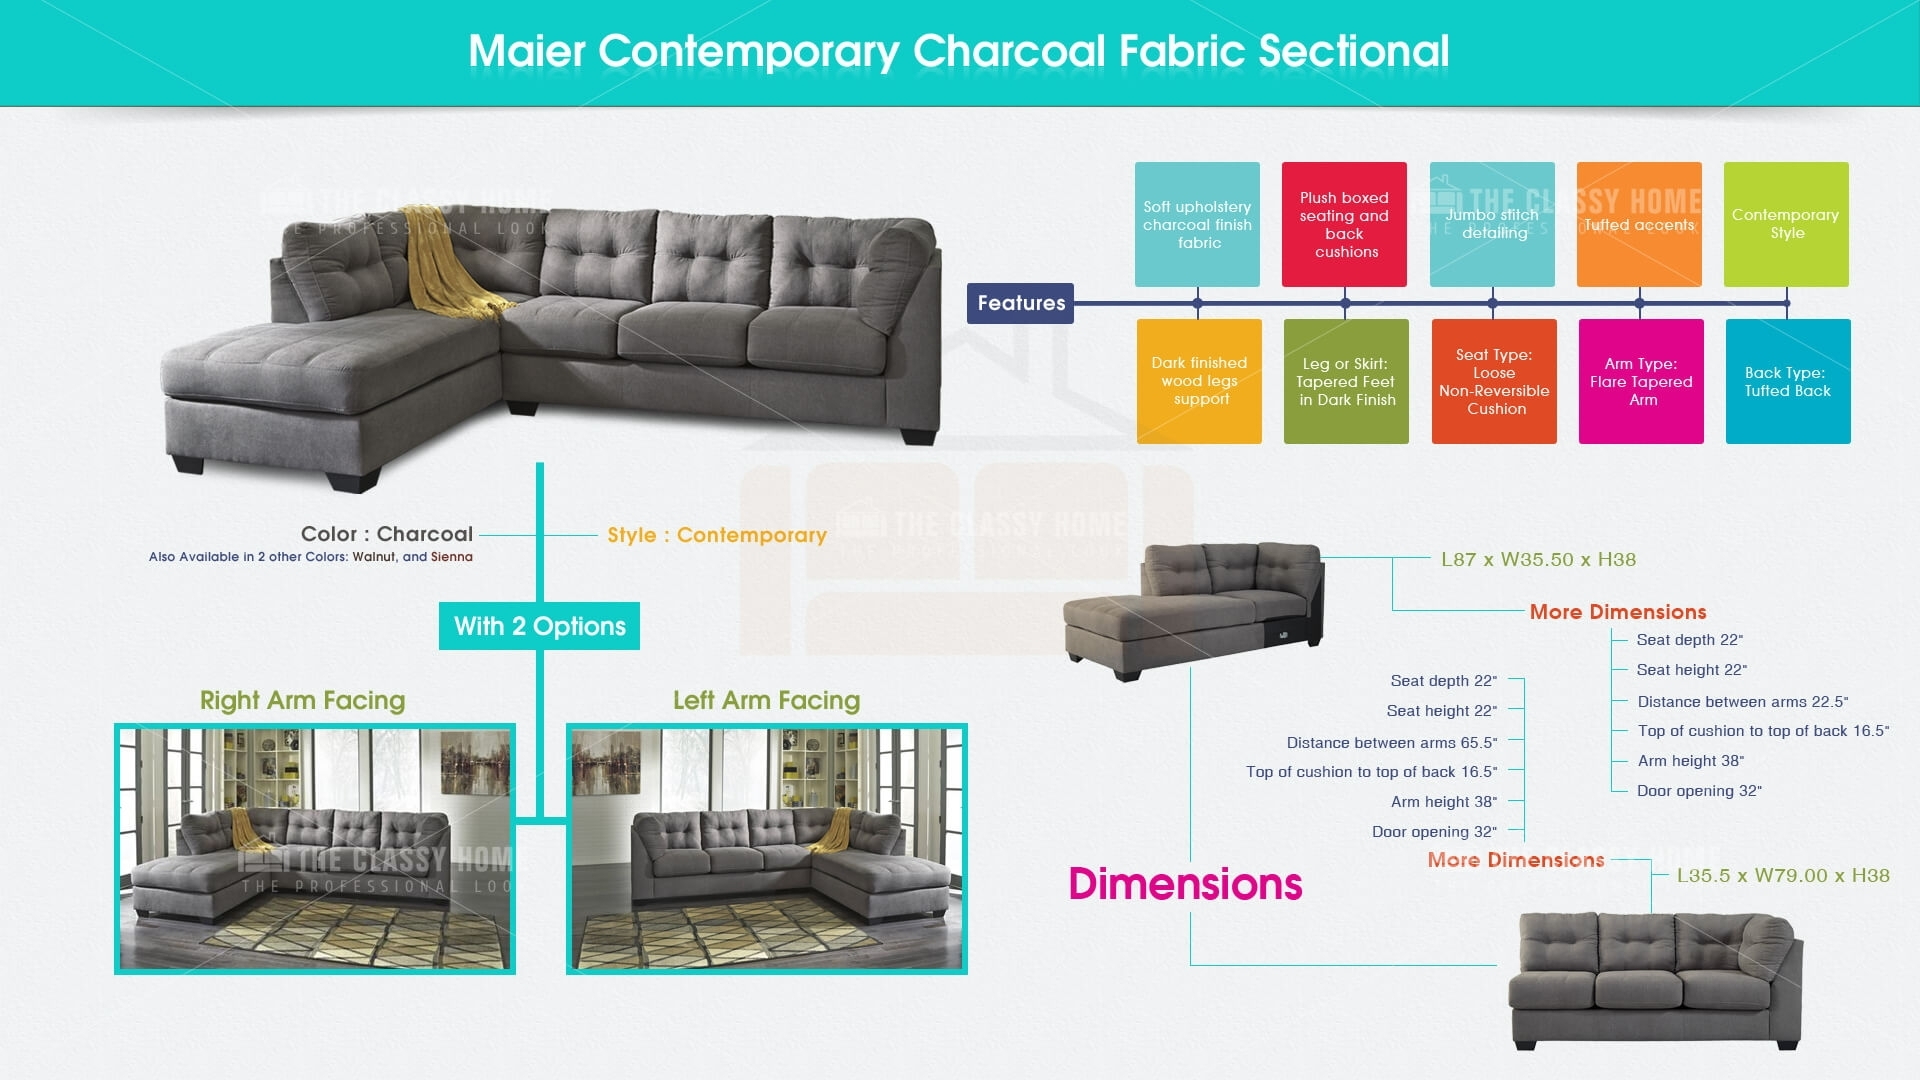 Ashley Furniture Maier Charcoal Raf Chaise Sectional | The Classy Home intended for Lucy Grey 2 Piece Sectionals With Raf Chaise (Image 4 of 30)